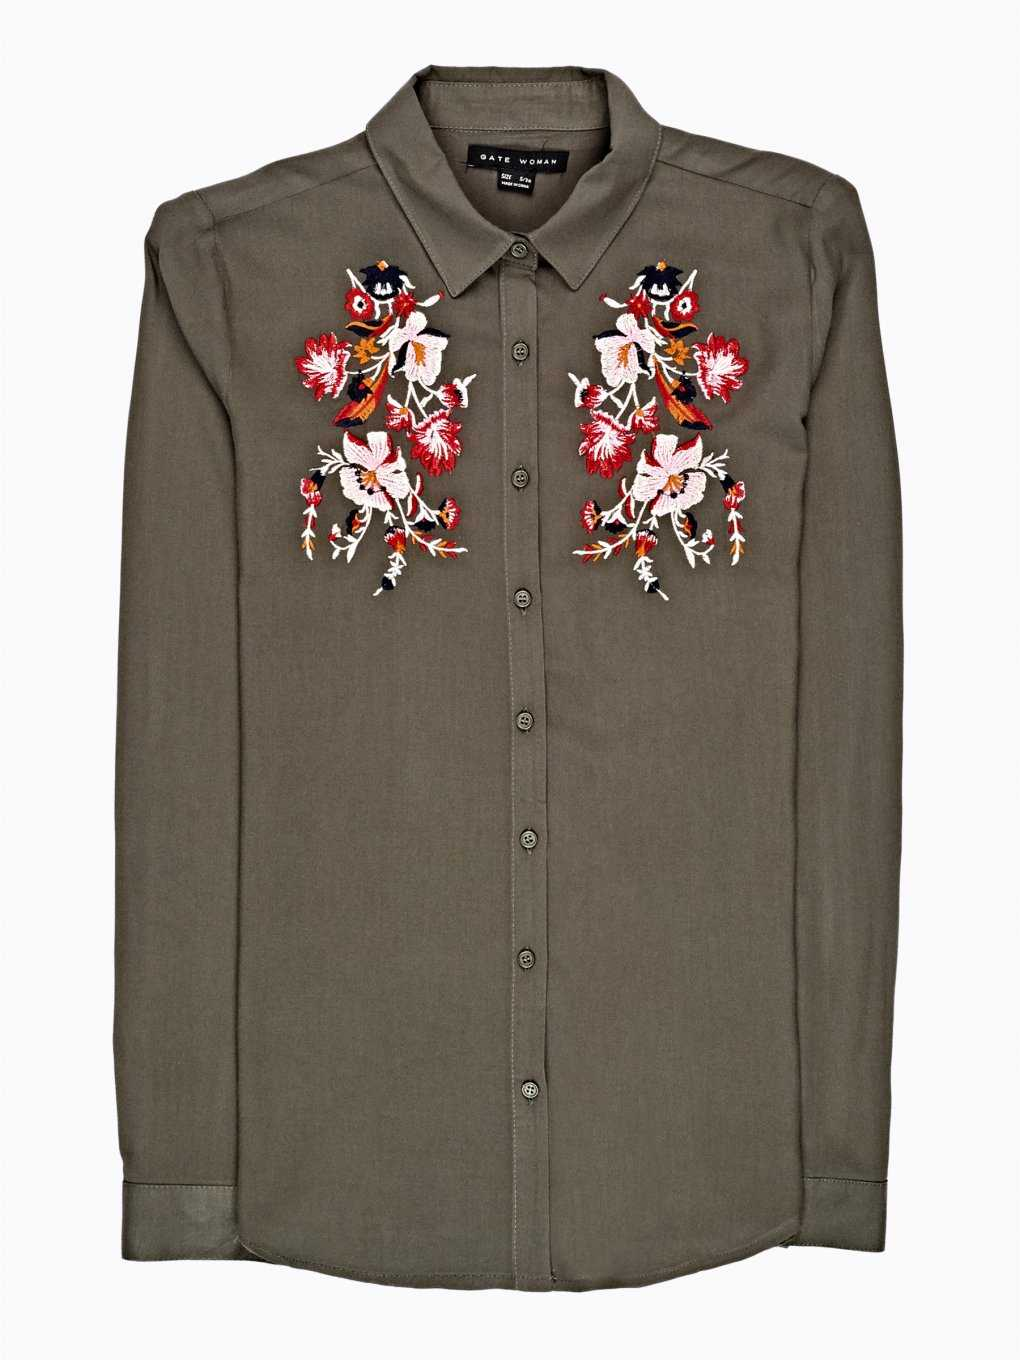 Viscose shirt with emroidery